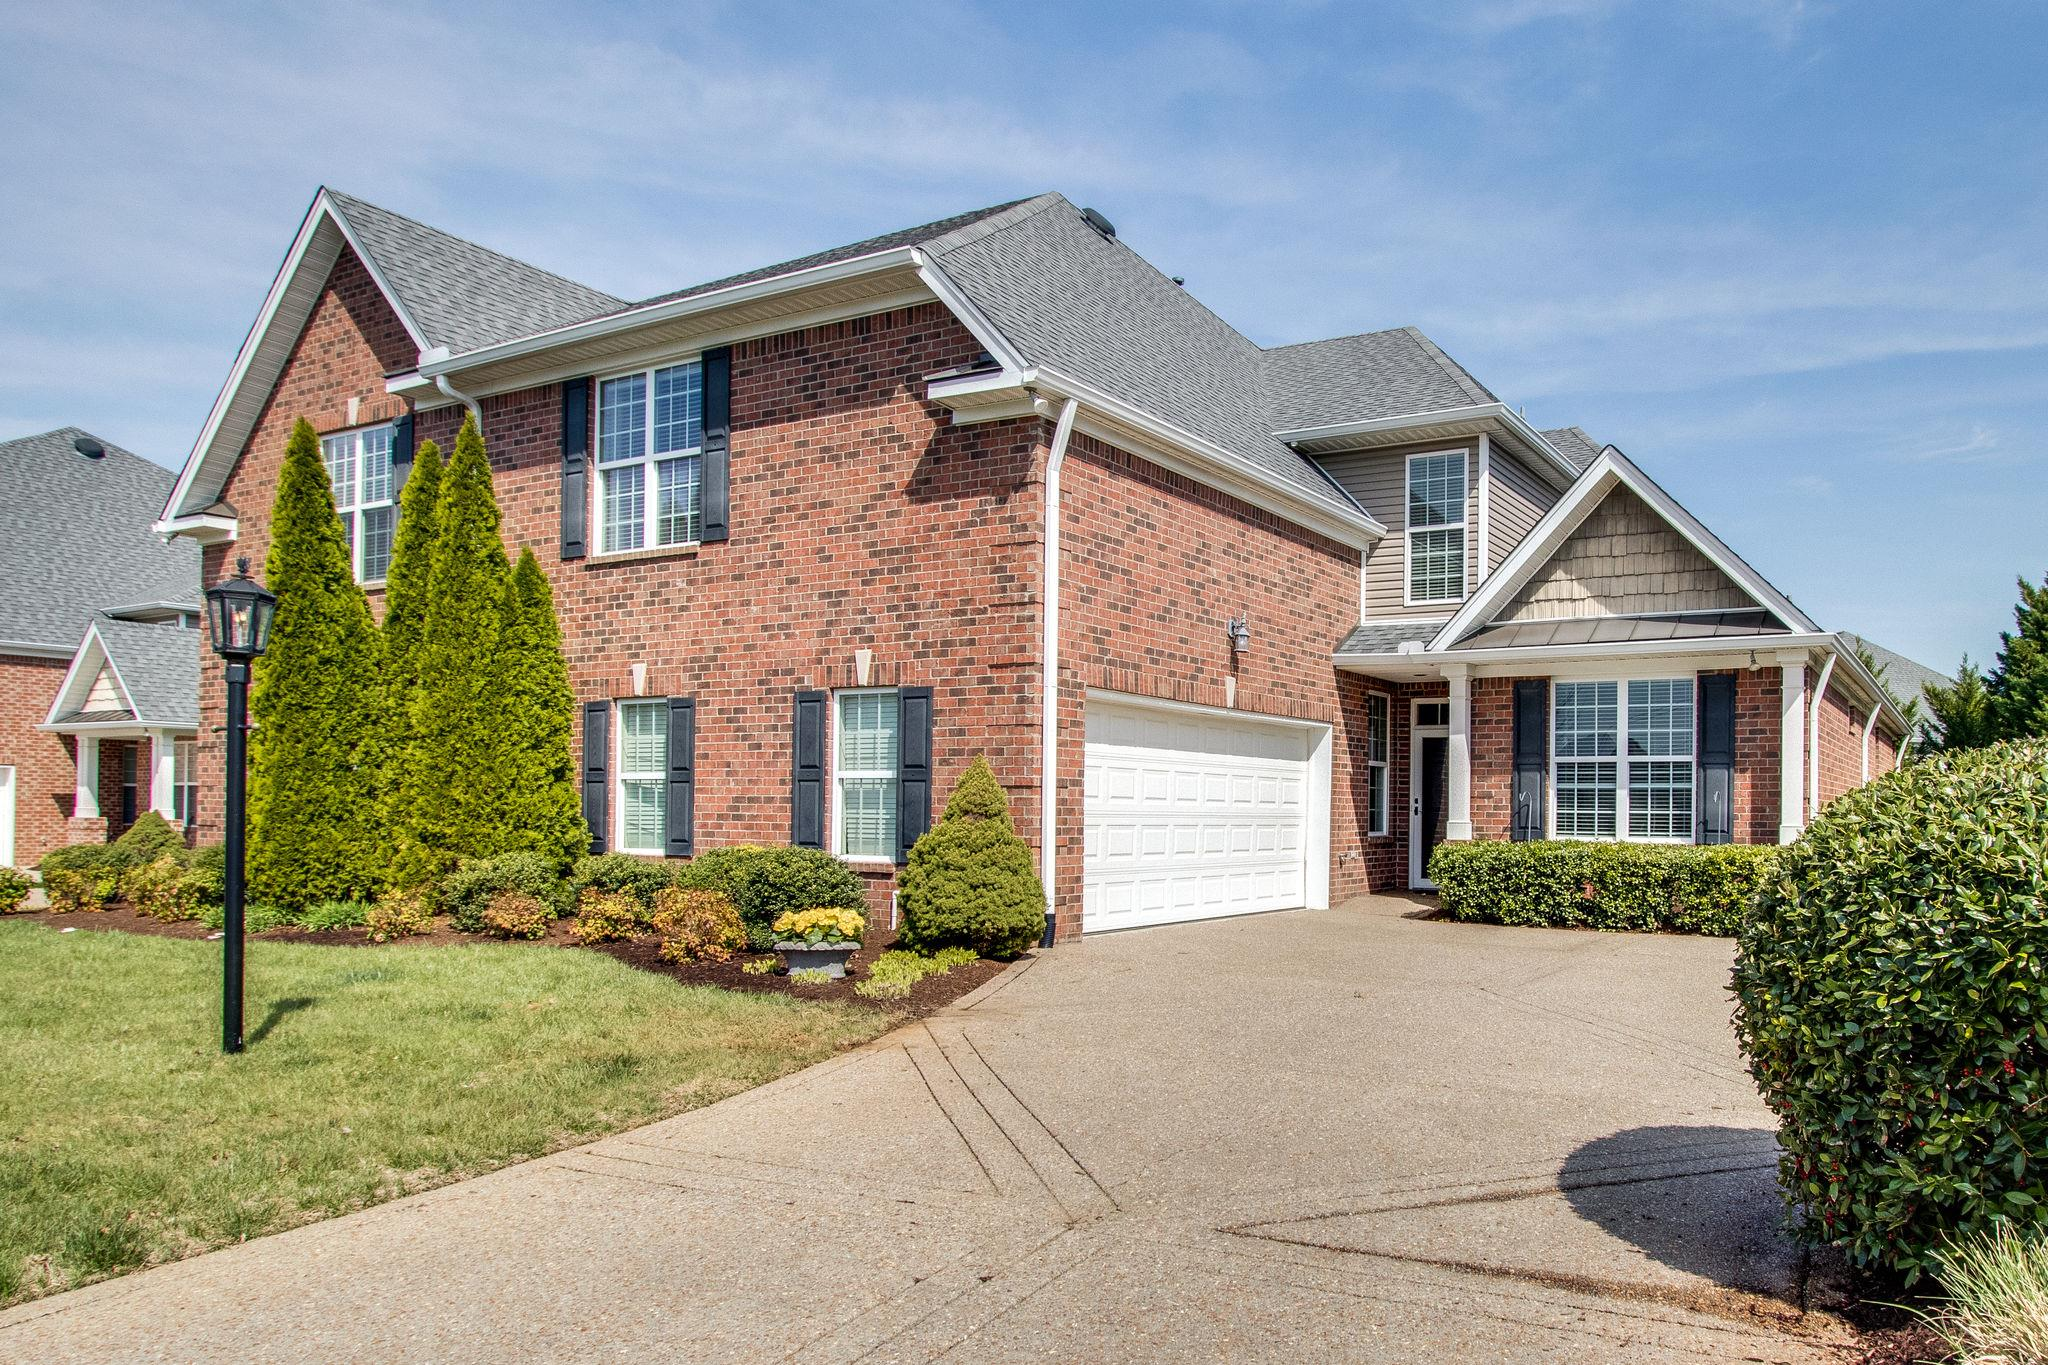 1304 Waxwing Dr, Hermitage, TN 37076 - Hermitage, TN real estate listing